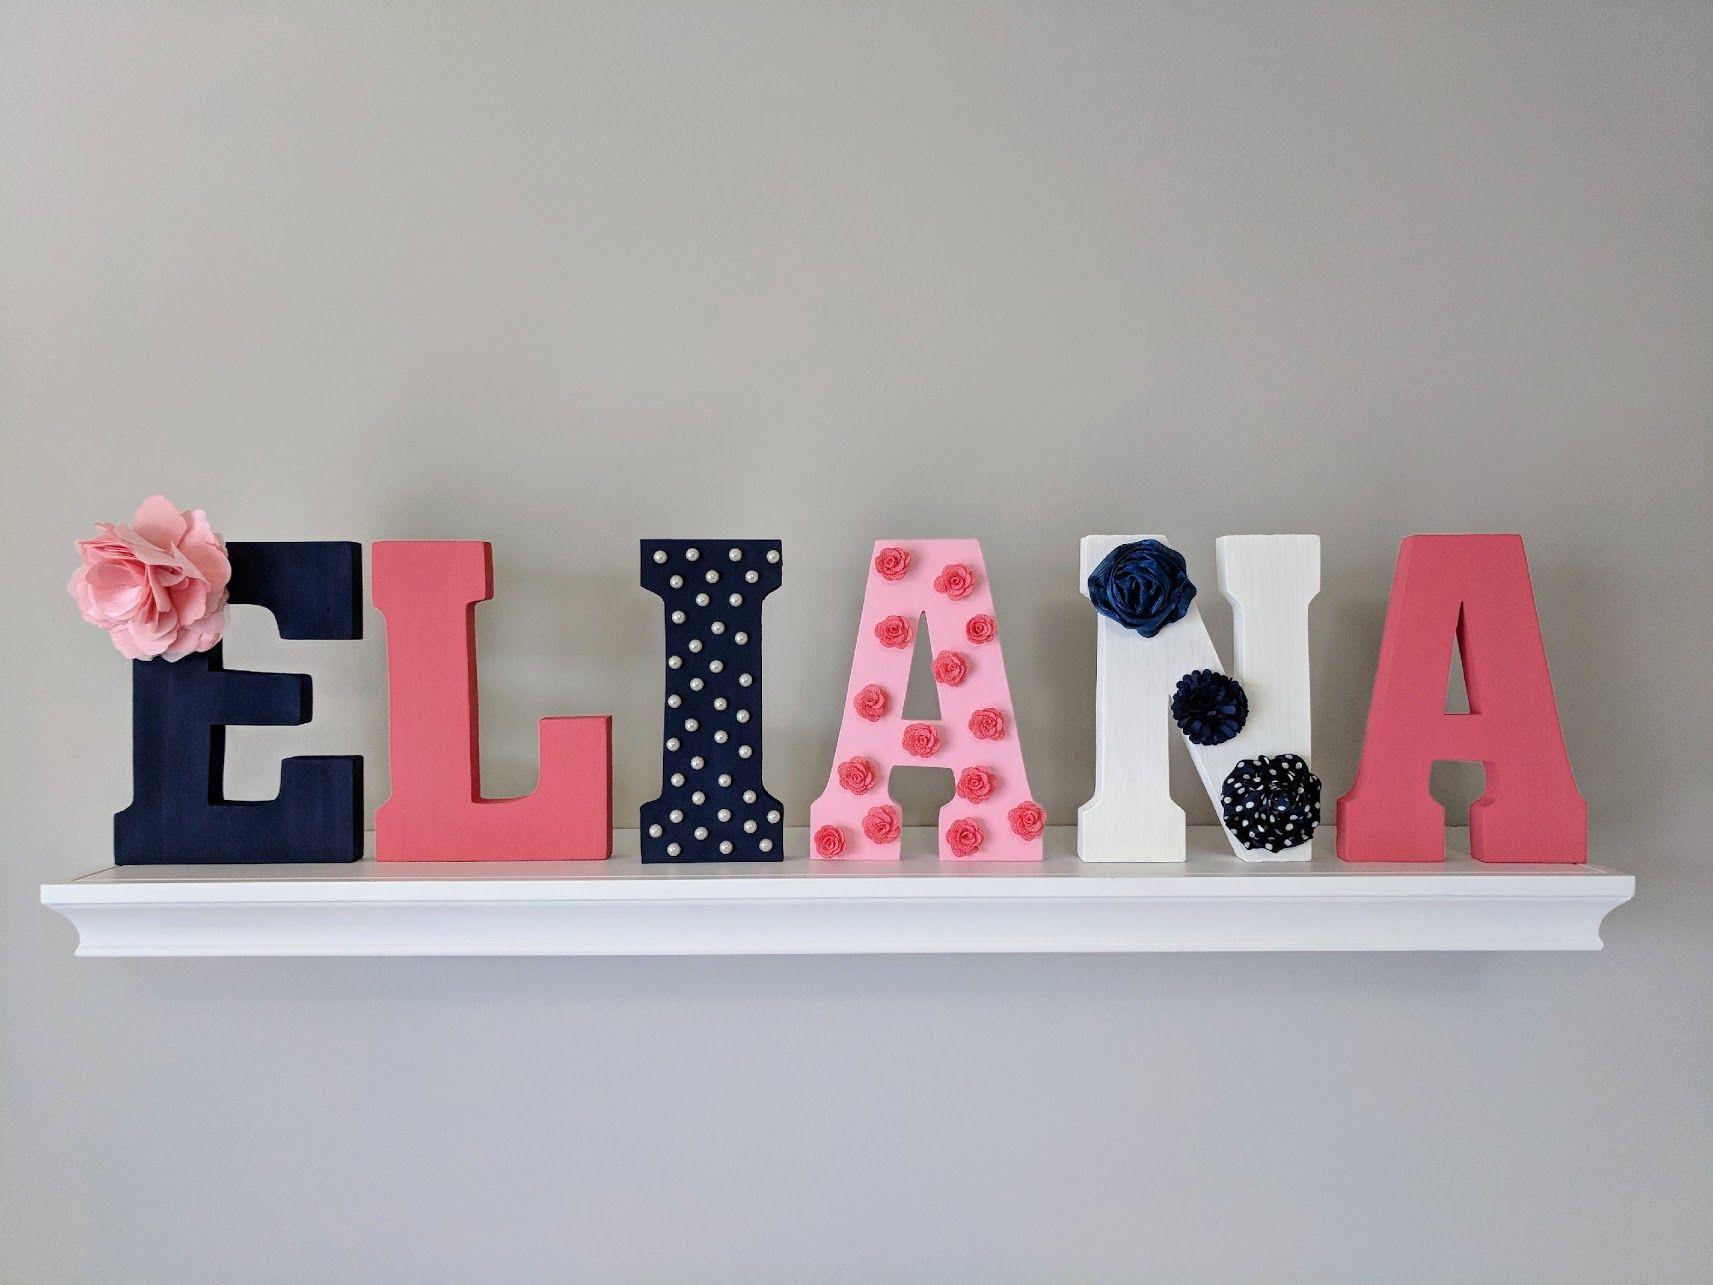 Eliana Name Decor Wall Letters Wall Hanging Or And Stand Alone Wooden Letters For Name Painte Wood Letter Wall Decor Wooden Letters Diy Letter Wall Decor